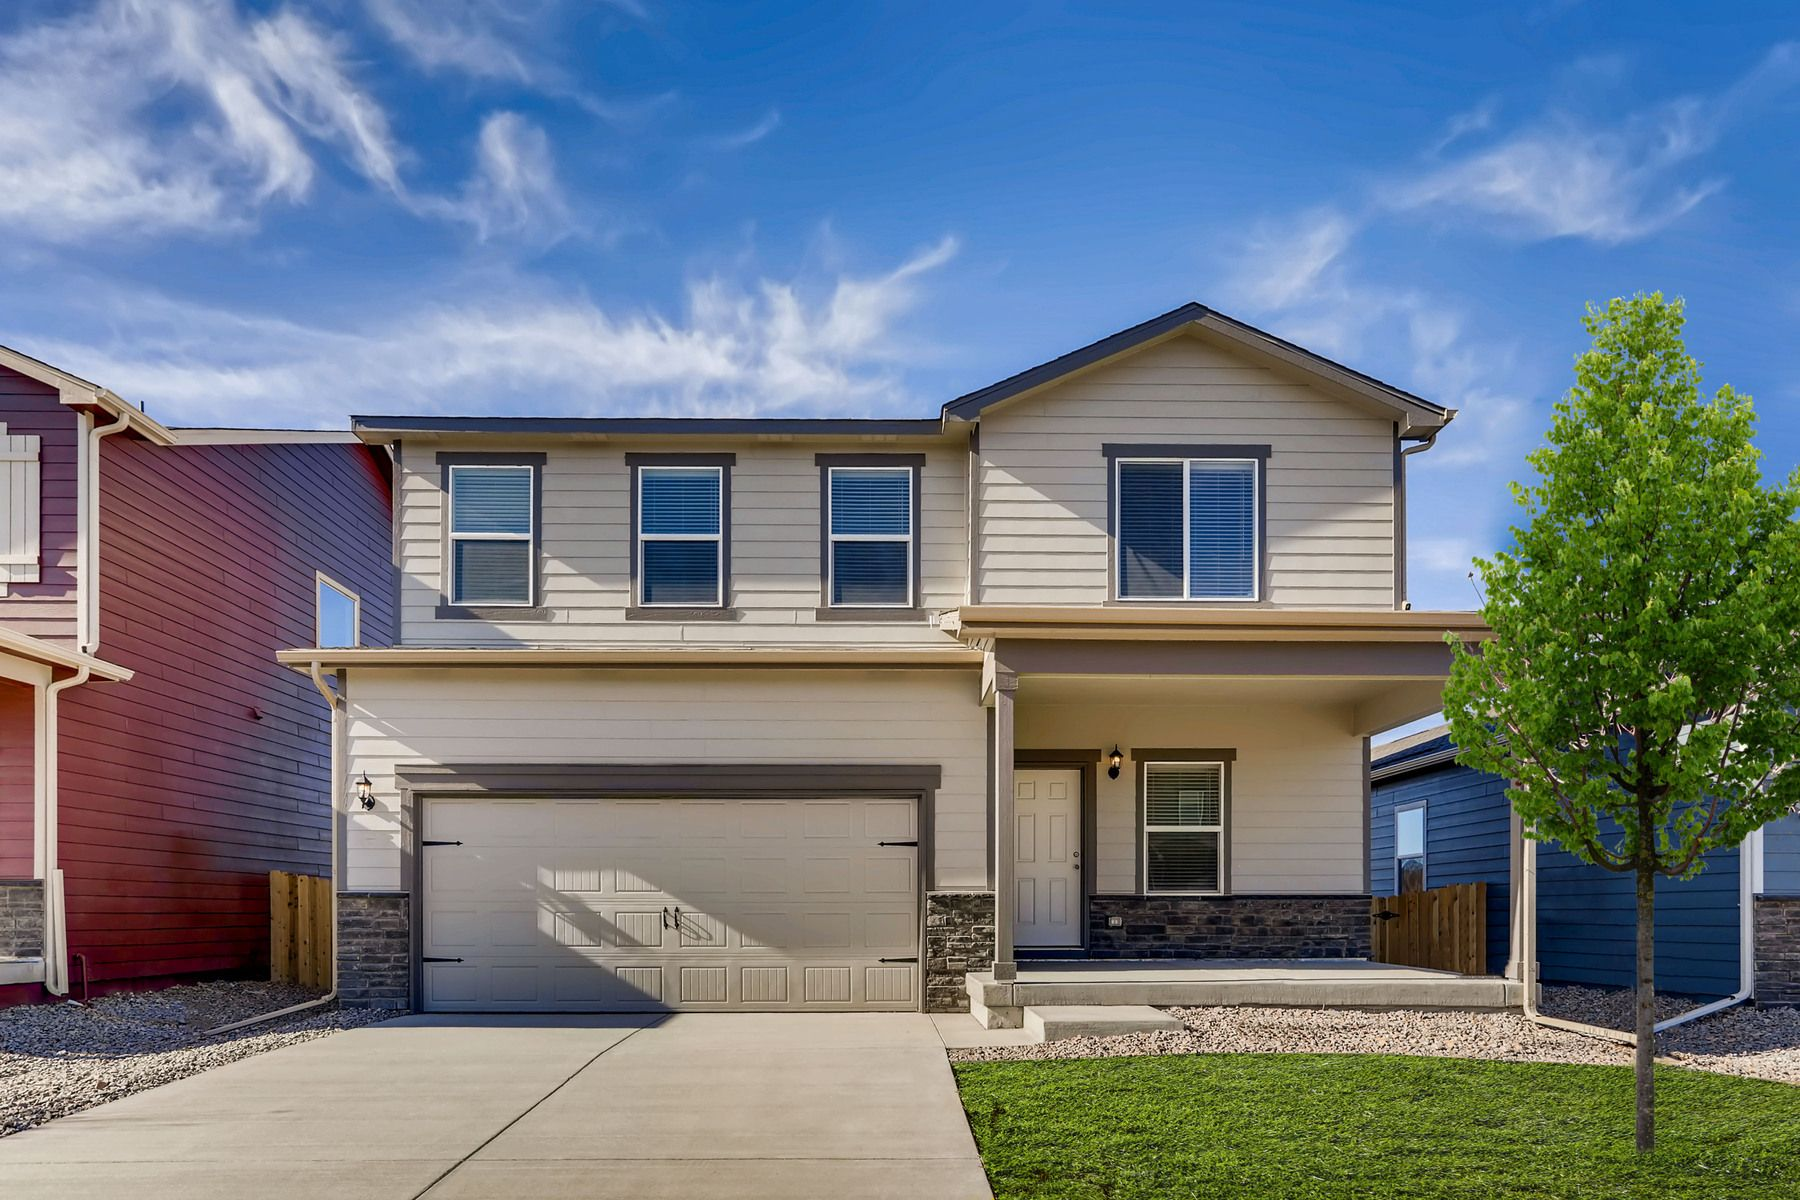 Lovely 2-story home:The Yale by LGI Homes